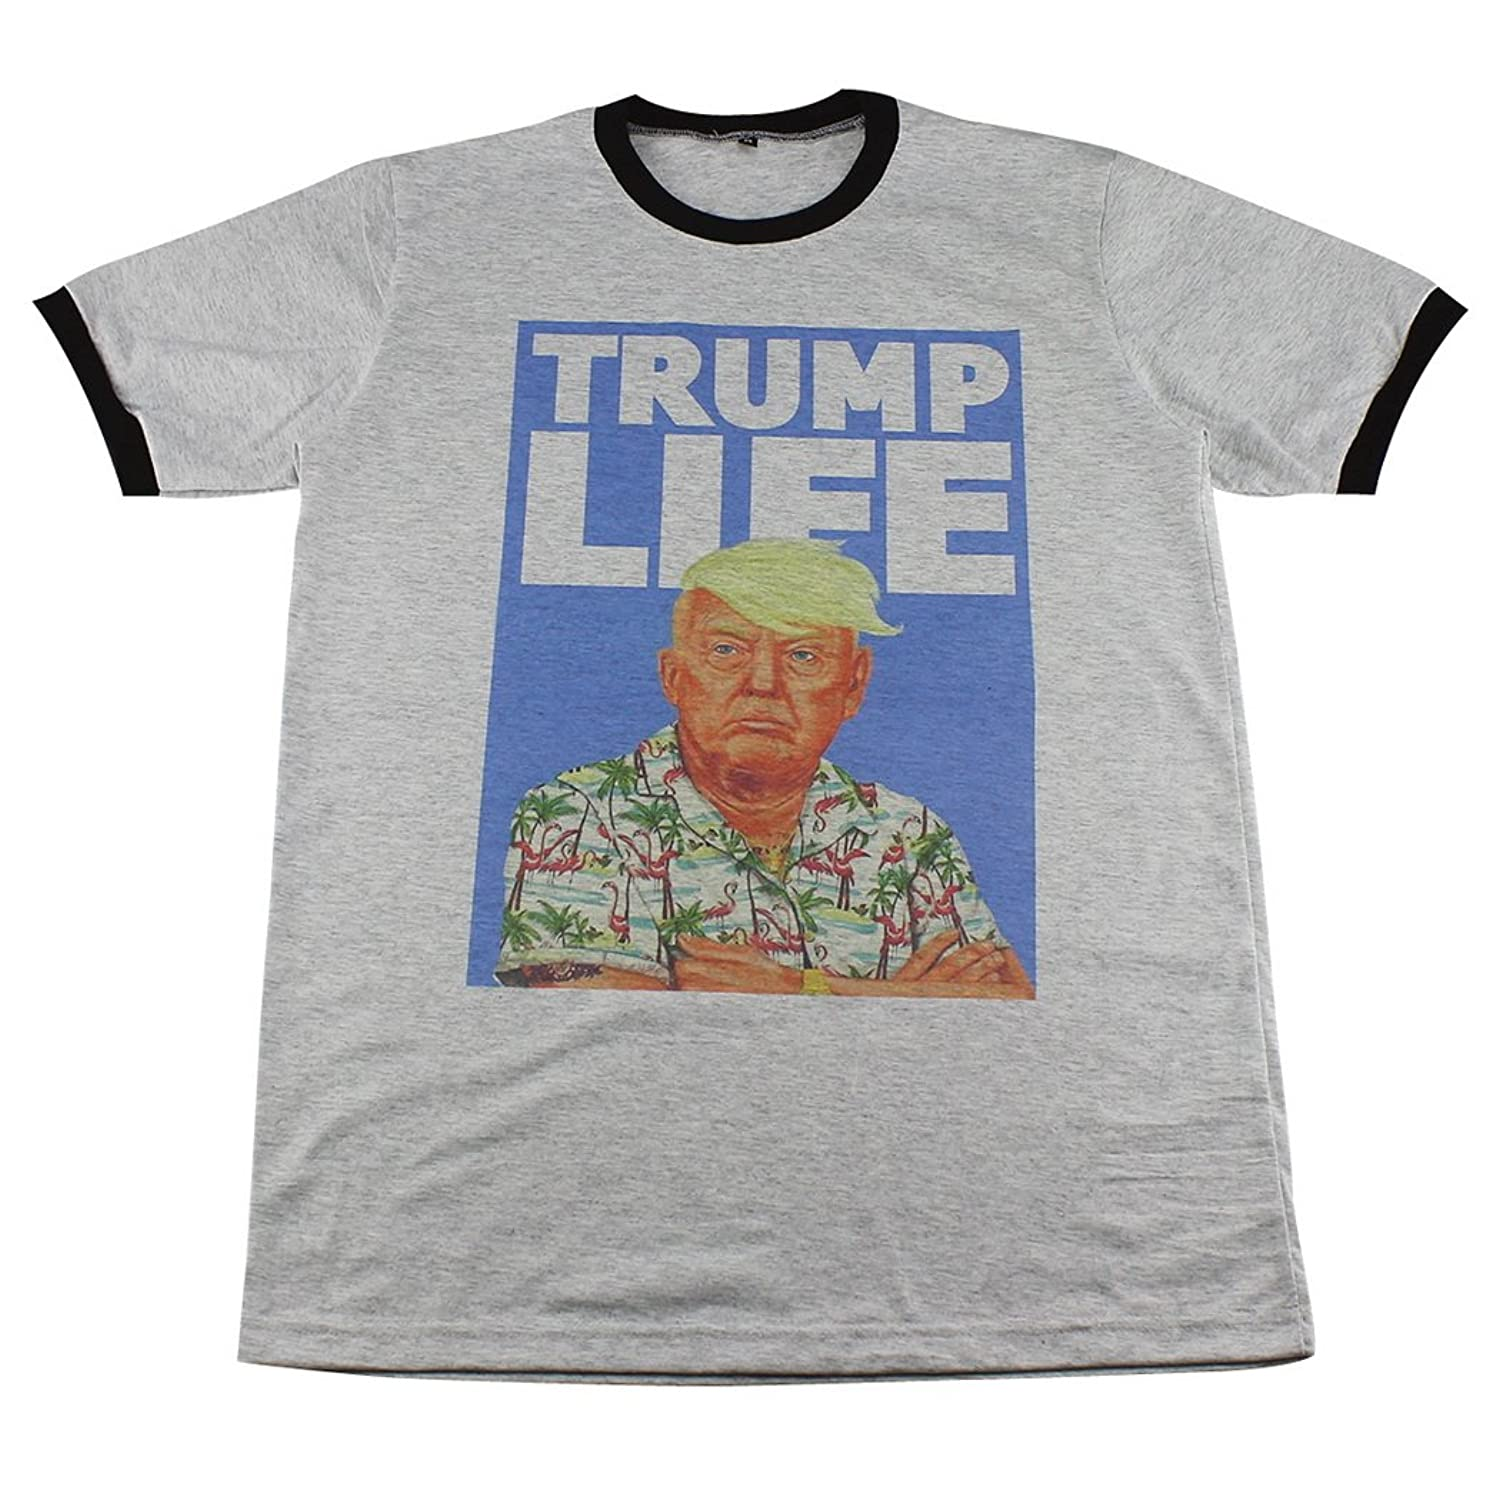 Donald Trump aloha election pop art street wear retro T-Shirt / GV242.4 size M